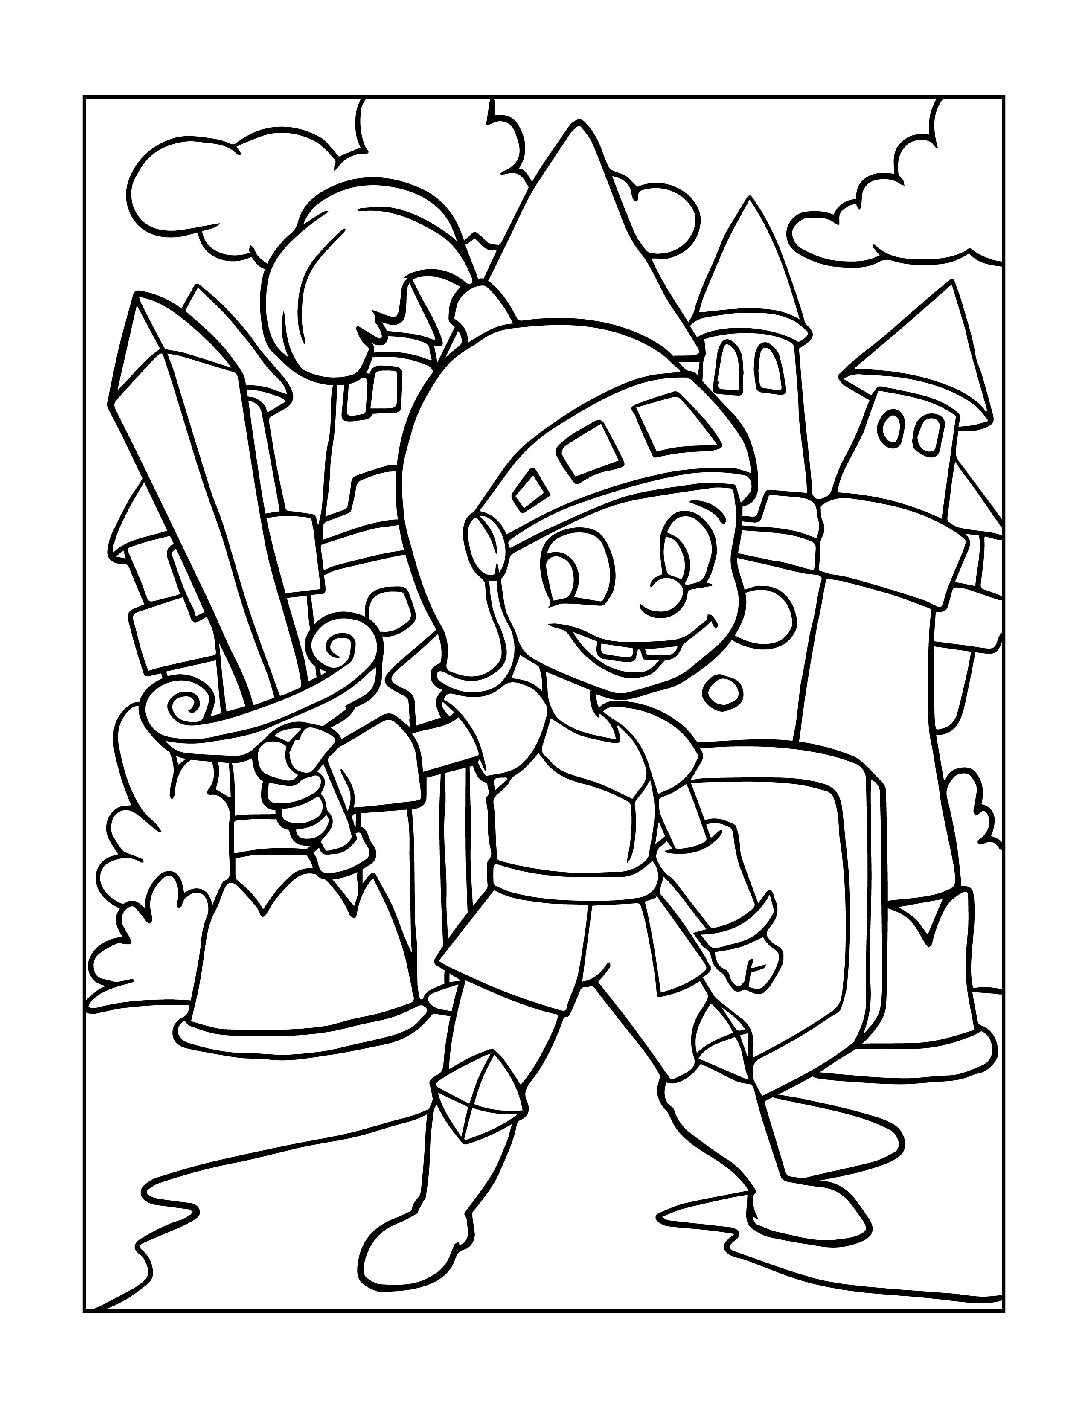 Coloring-Pages-Pirates-and-Knights-for-Boys-14-01-pdf Free Printable Pirates &  Knights Colouring Pages